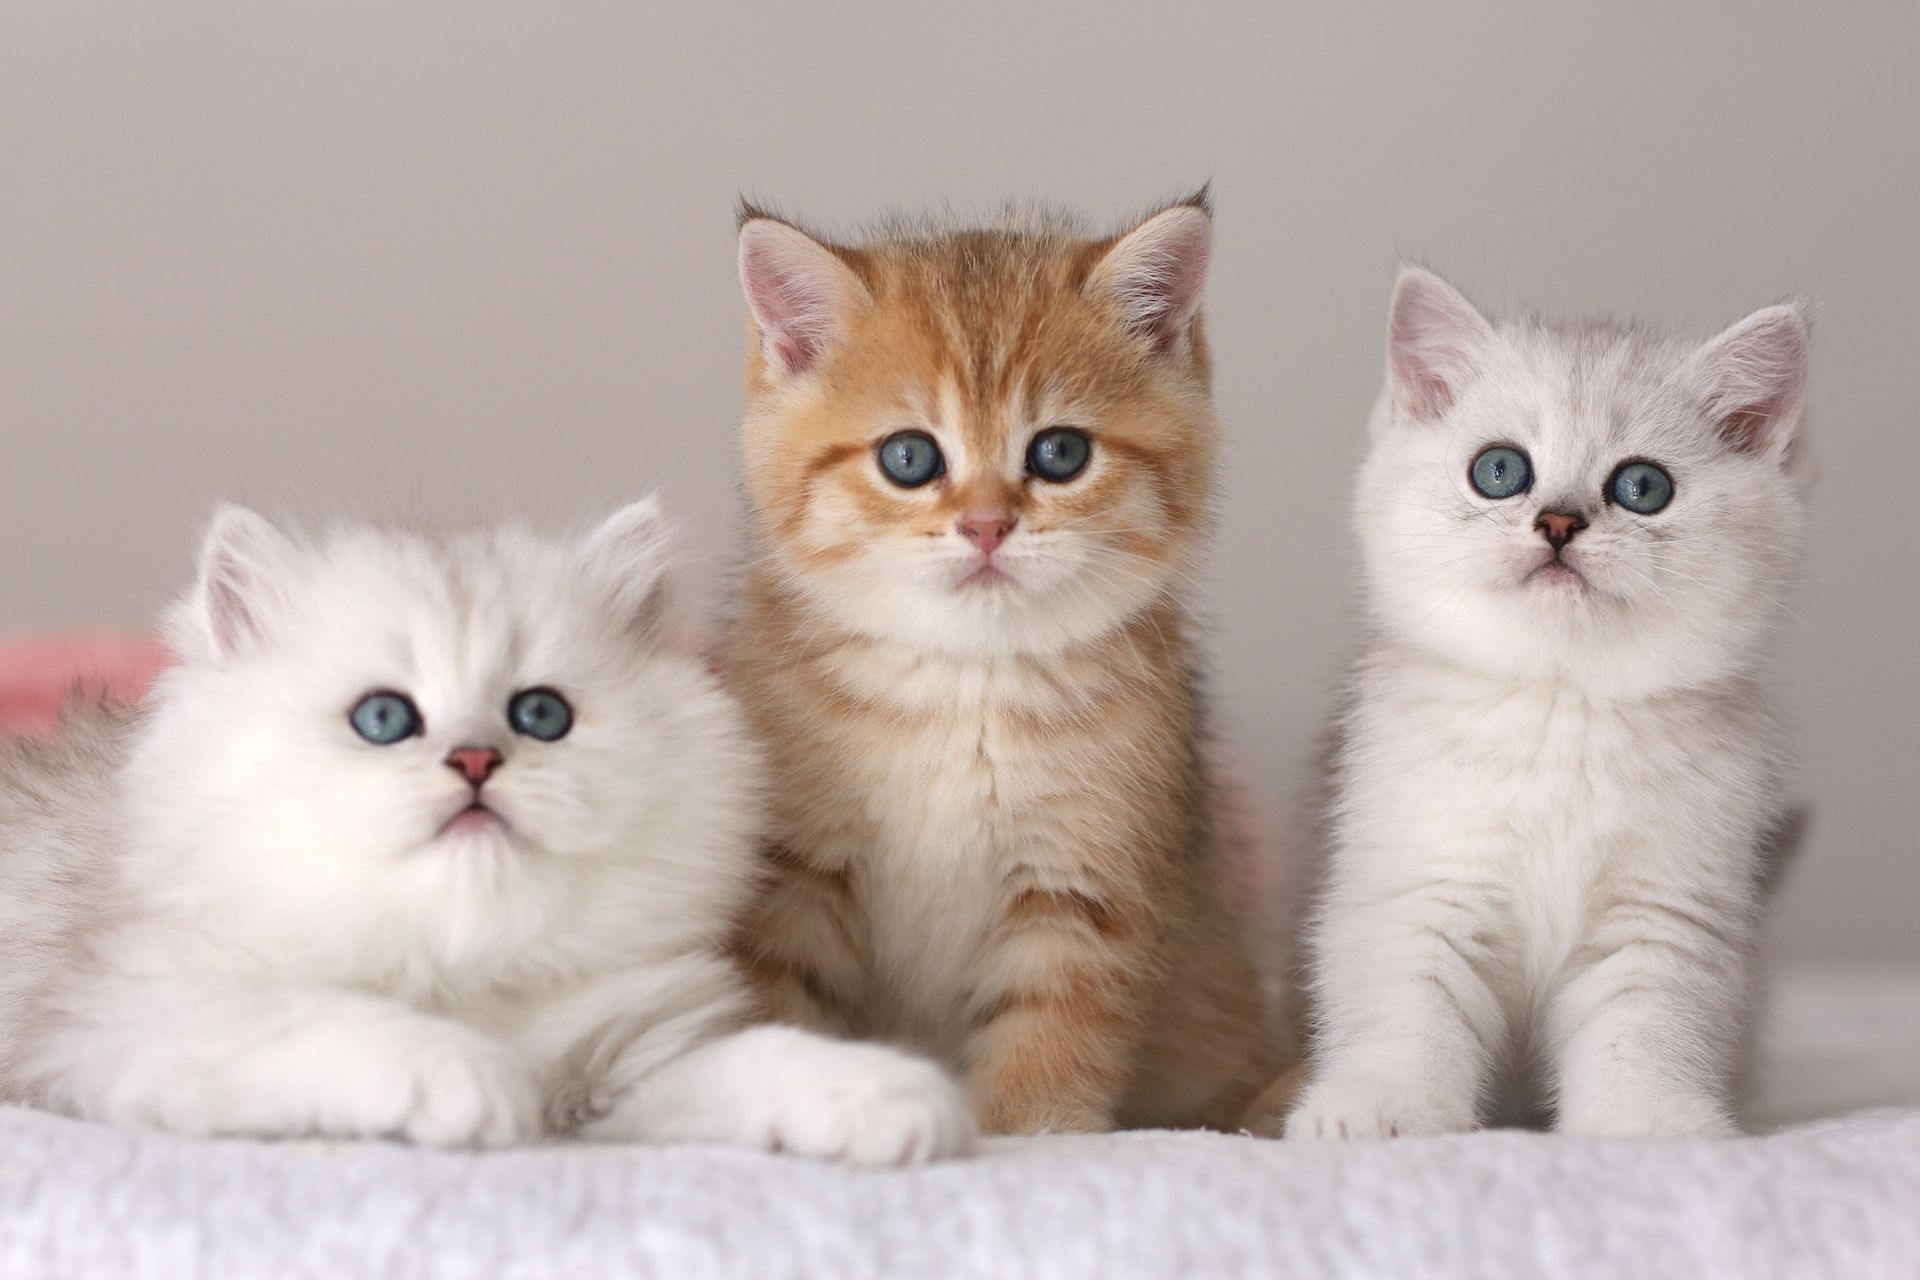 British Shorthair And Longhair Kittens For Sale In Usa Www Britishcattery Com British Shorthair Kittens Cattery Kittens